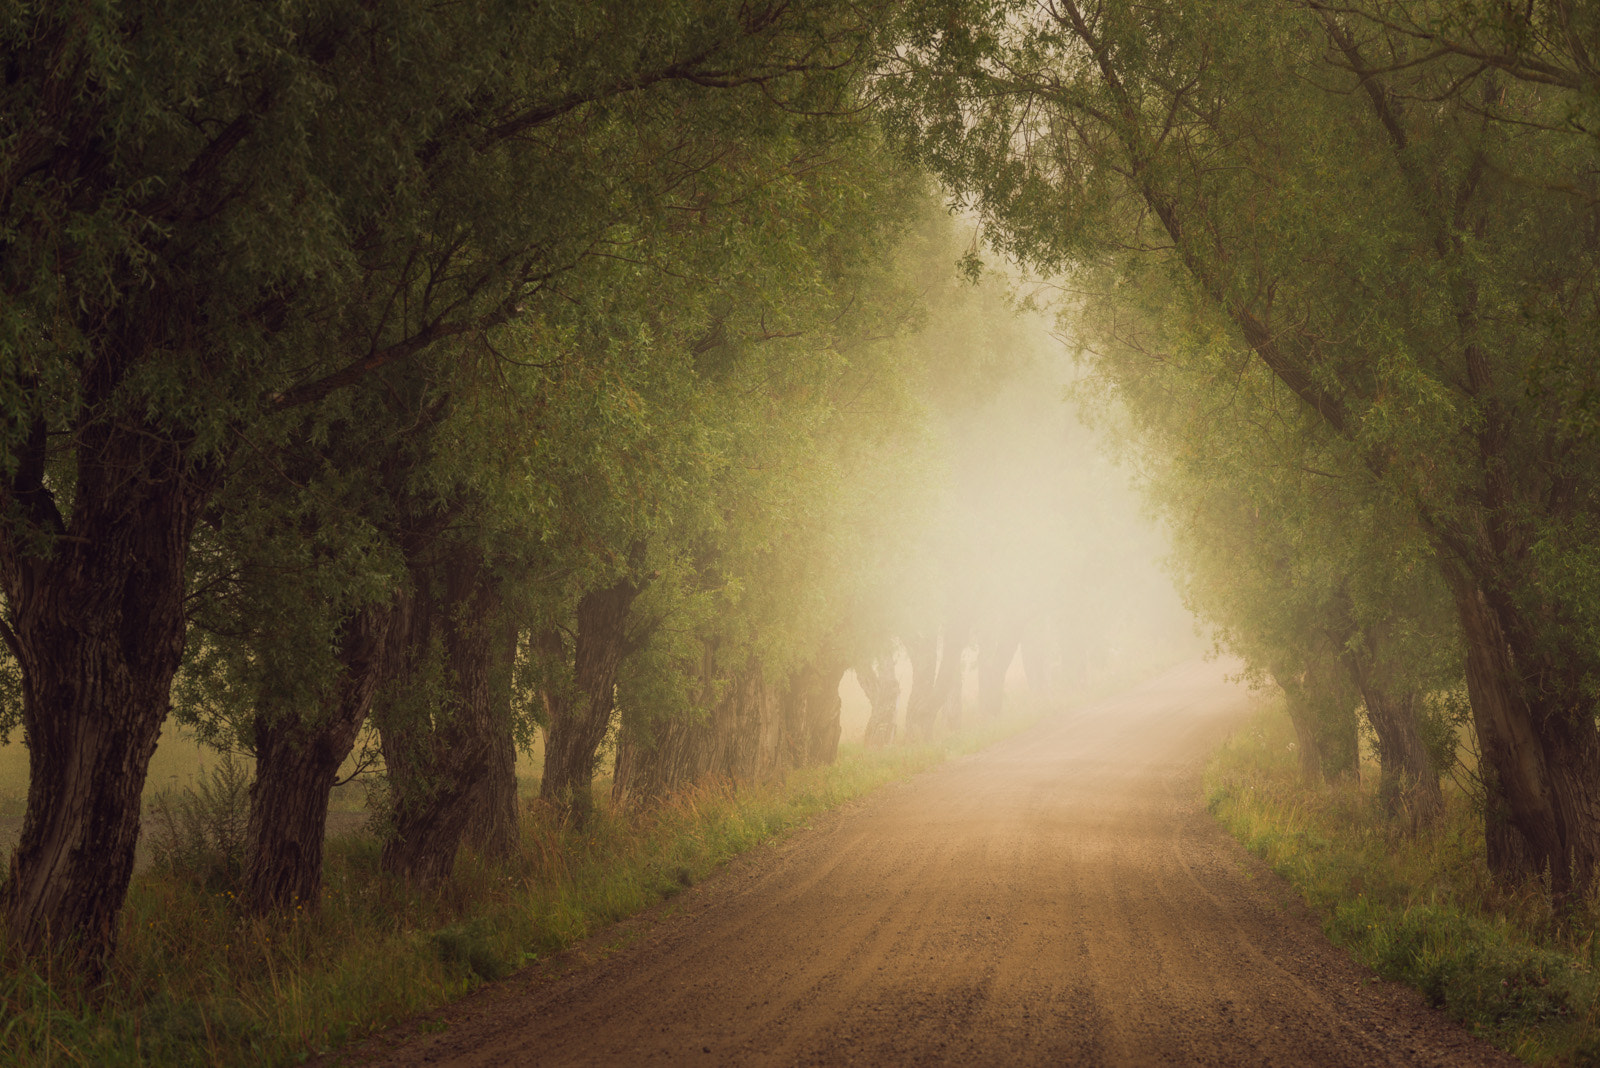 Photograph Path by Mikko Lagerstedt on 500px